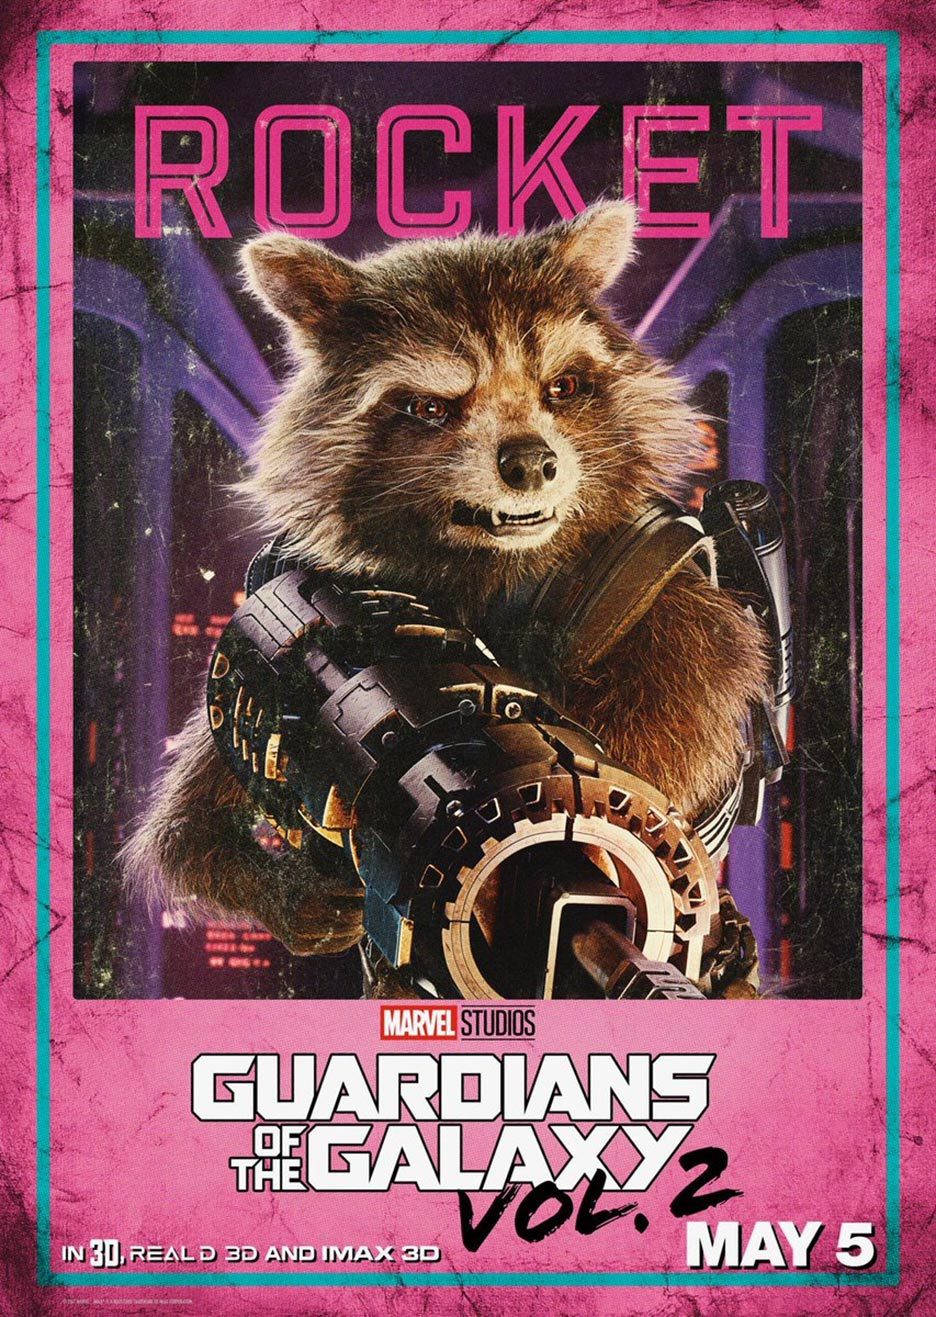 Guardians of the Galaxy Vol. 2 Poster #8